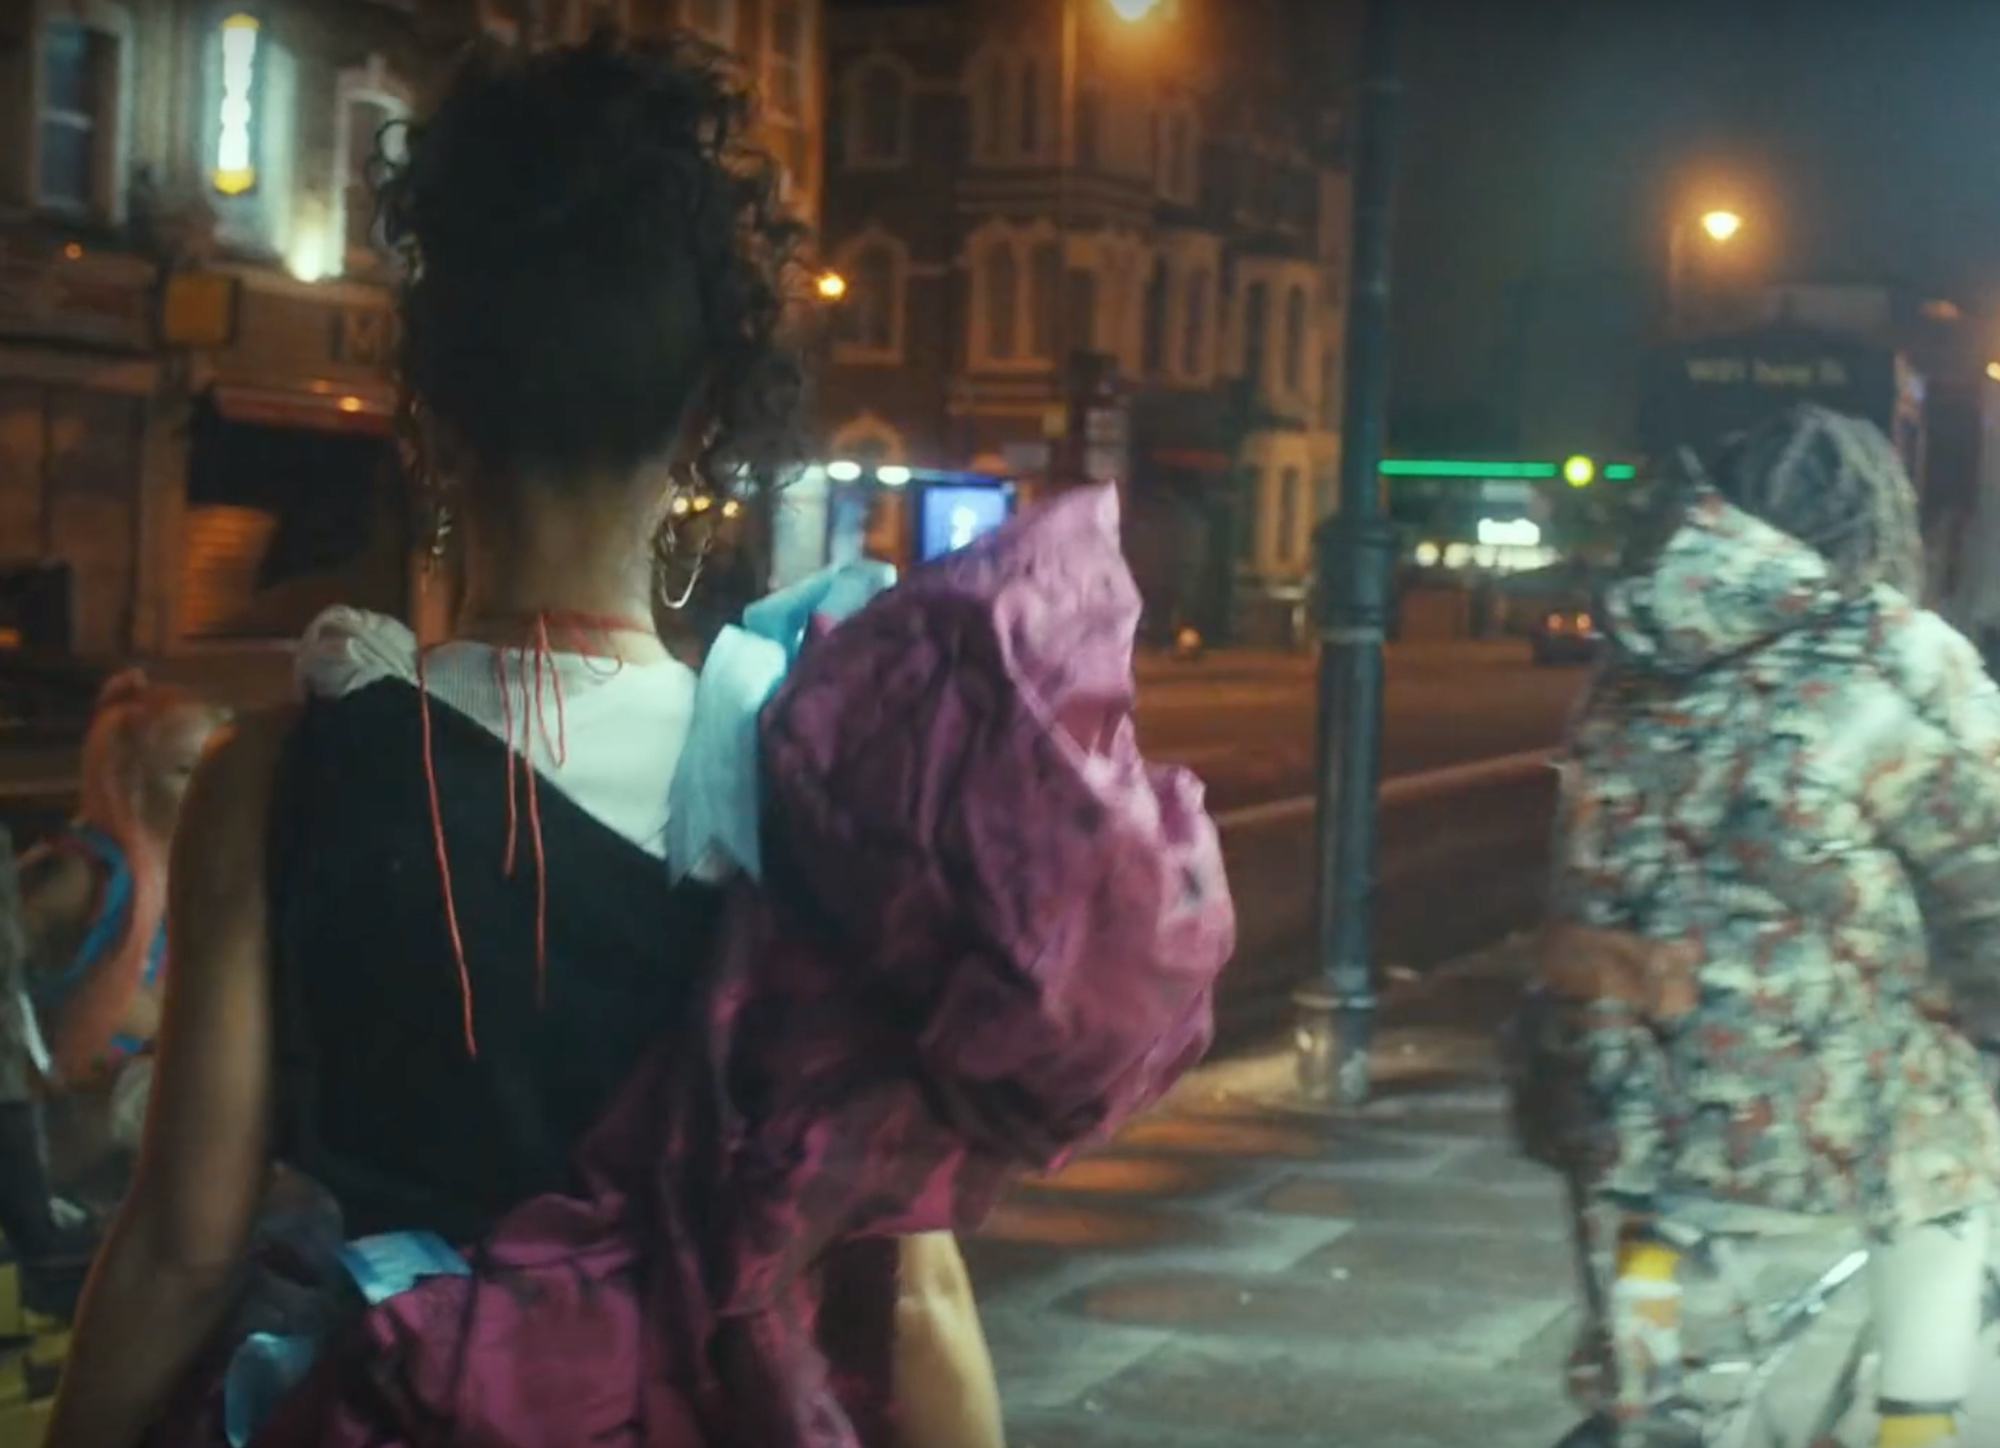 Wonderland FKA Twigs new music video Kingsland road